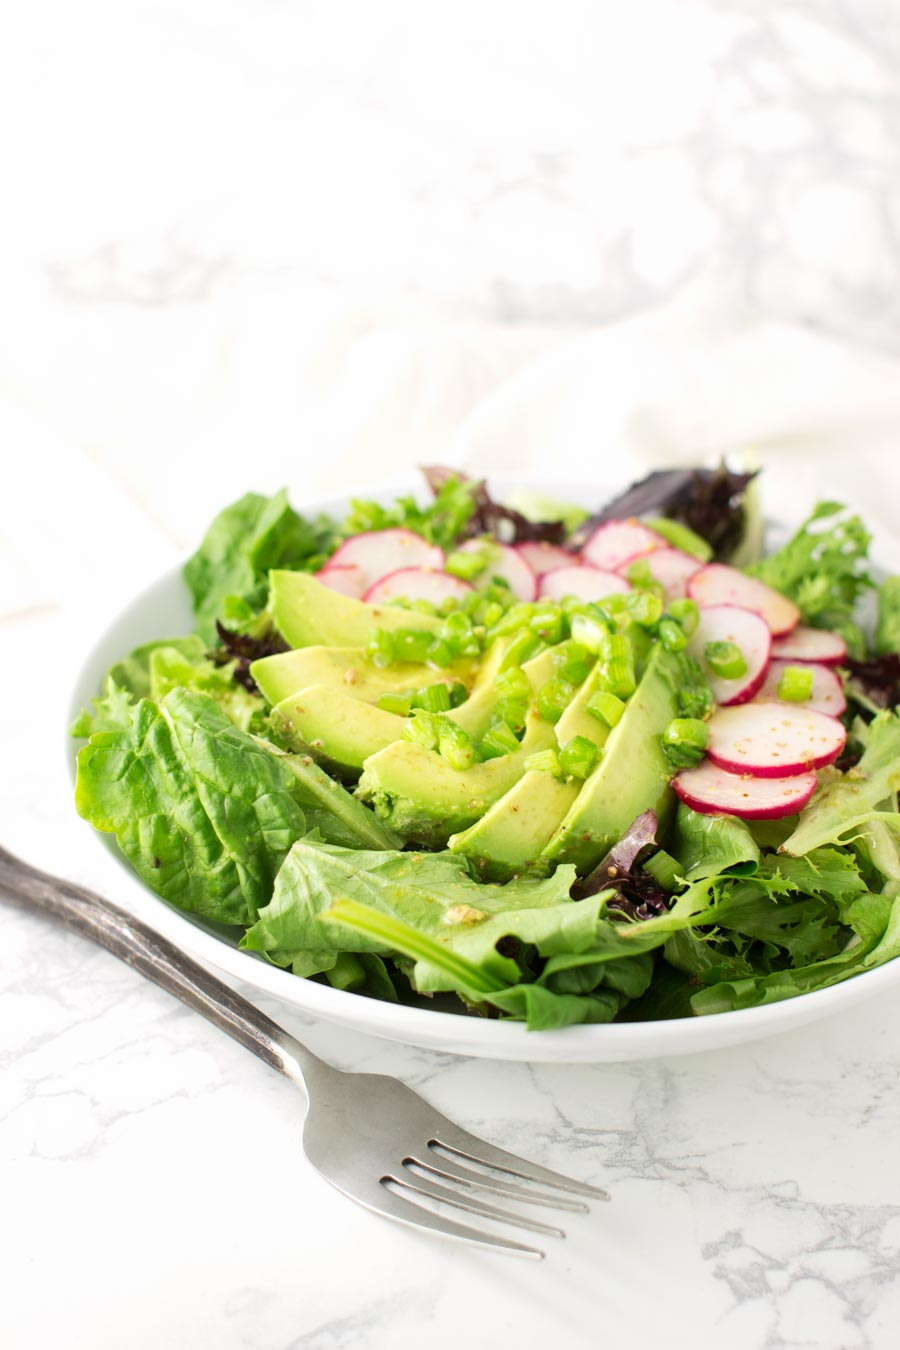 Avocado Radish Salad recipe from acleanplate.com #paleo #aip #autoimmuneprotocol